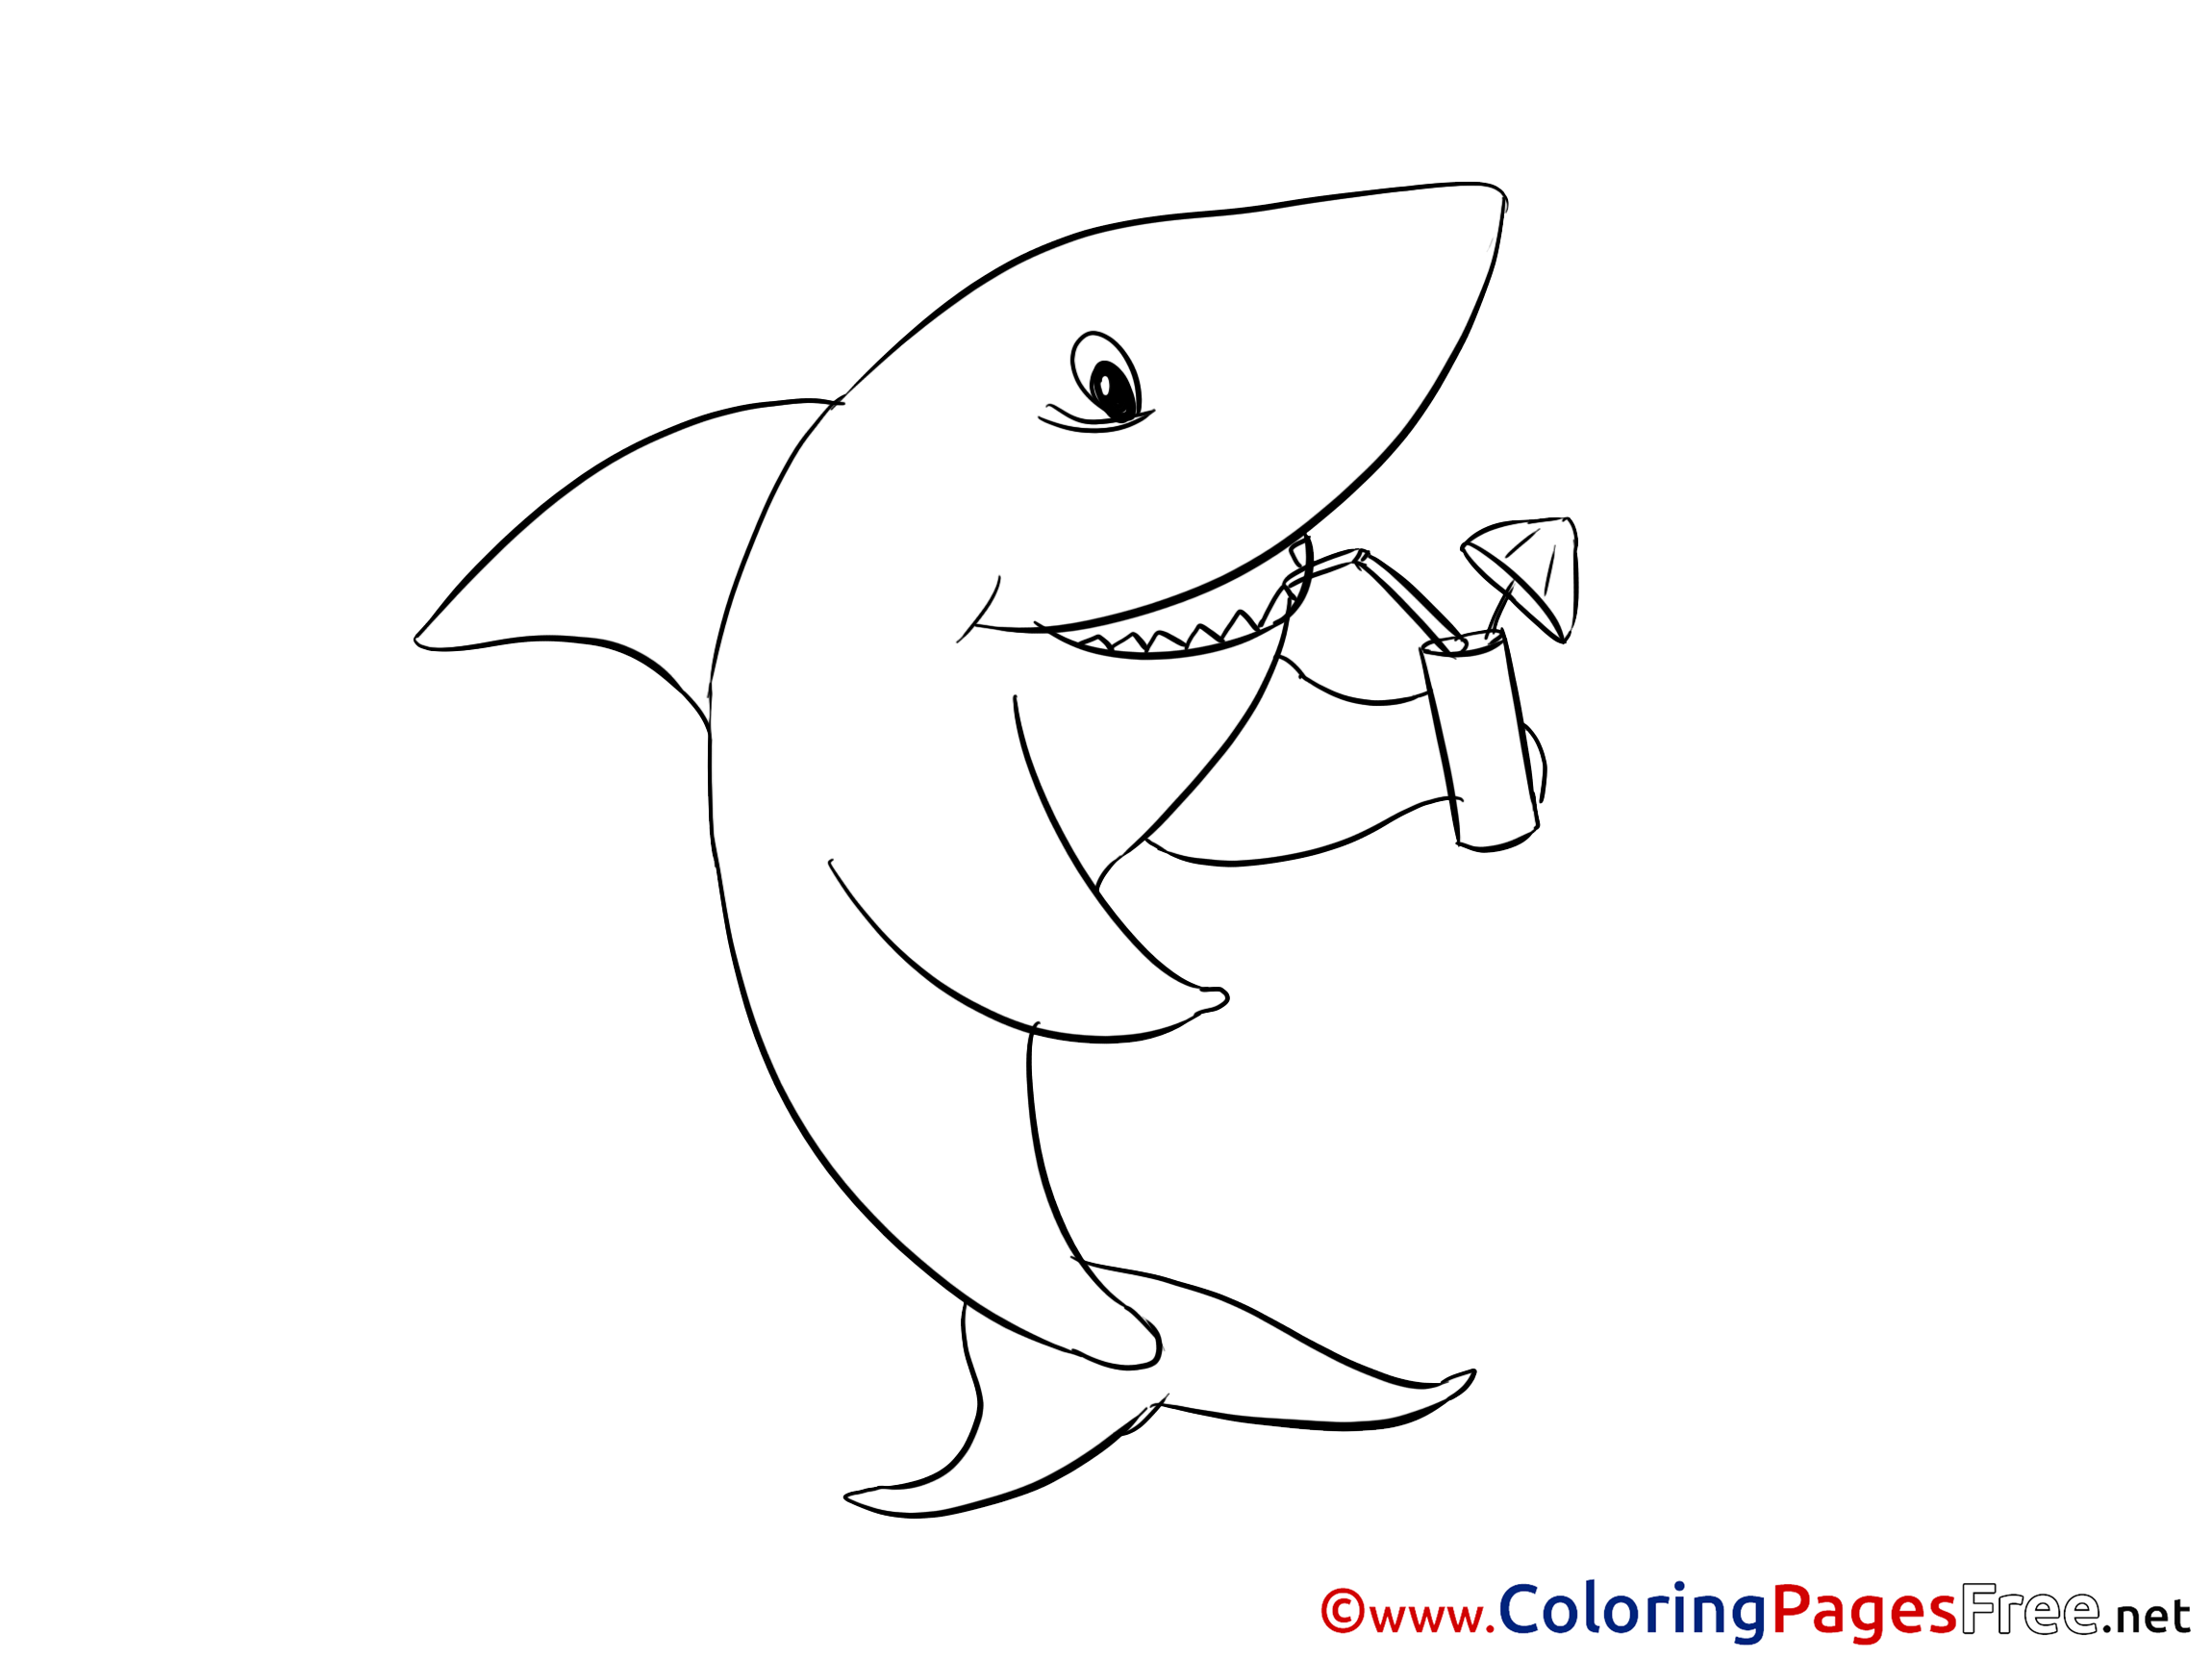 Shark Colouring Sheet download free